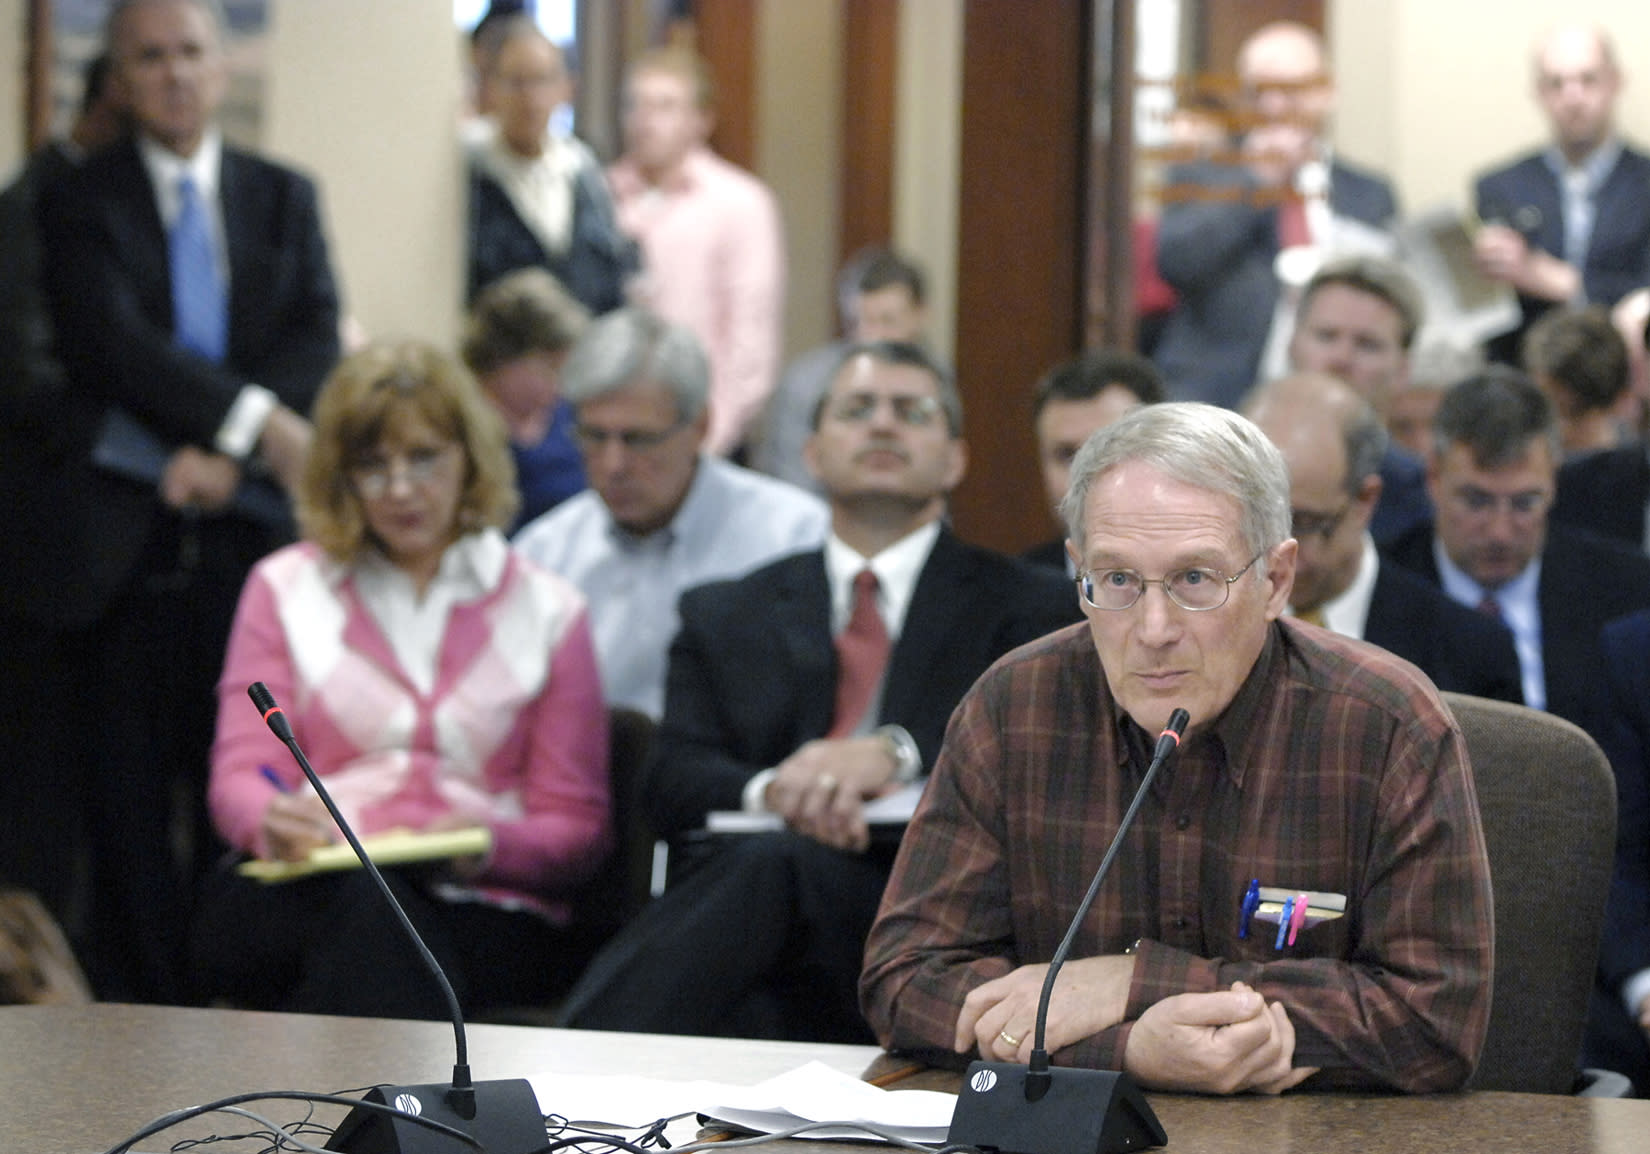 Dr. Lyle Best, of Watford City, N.D., testifies in front of officials with the Oil and Gas Division of the North Dakota Mineral Resources Department at a hearing Tuesday, April 22, 2014, in Bismarck, N.D. The North Dakota Industrial Commission was holding the hearing on its new natural gas flaring policy. (AP Photo/The Bismarck Tribune, Mike McCleary)